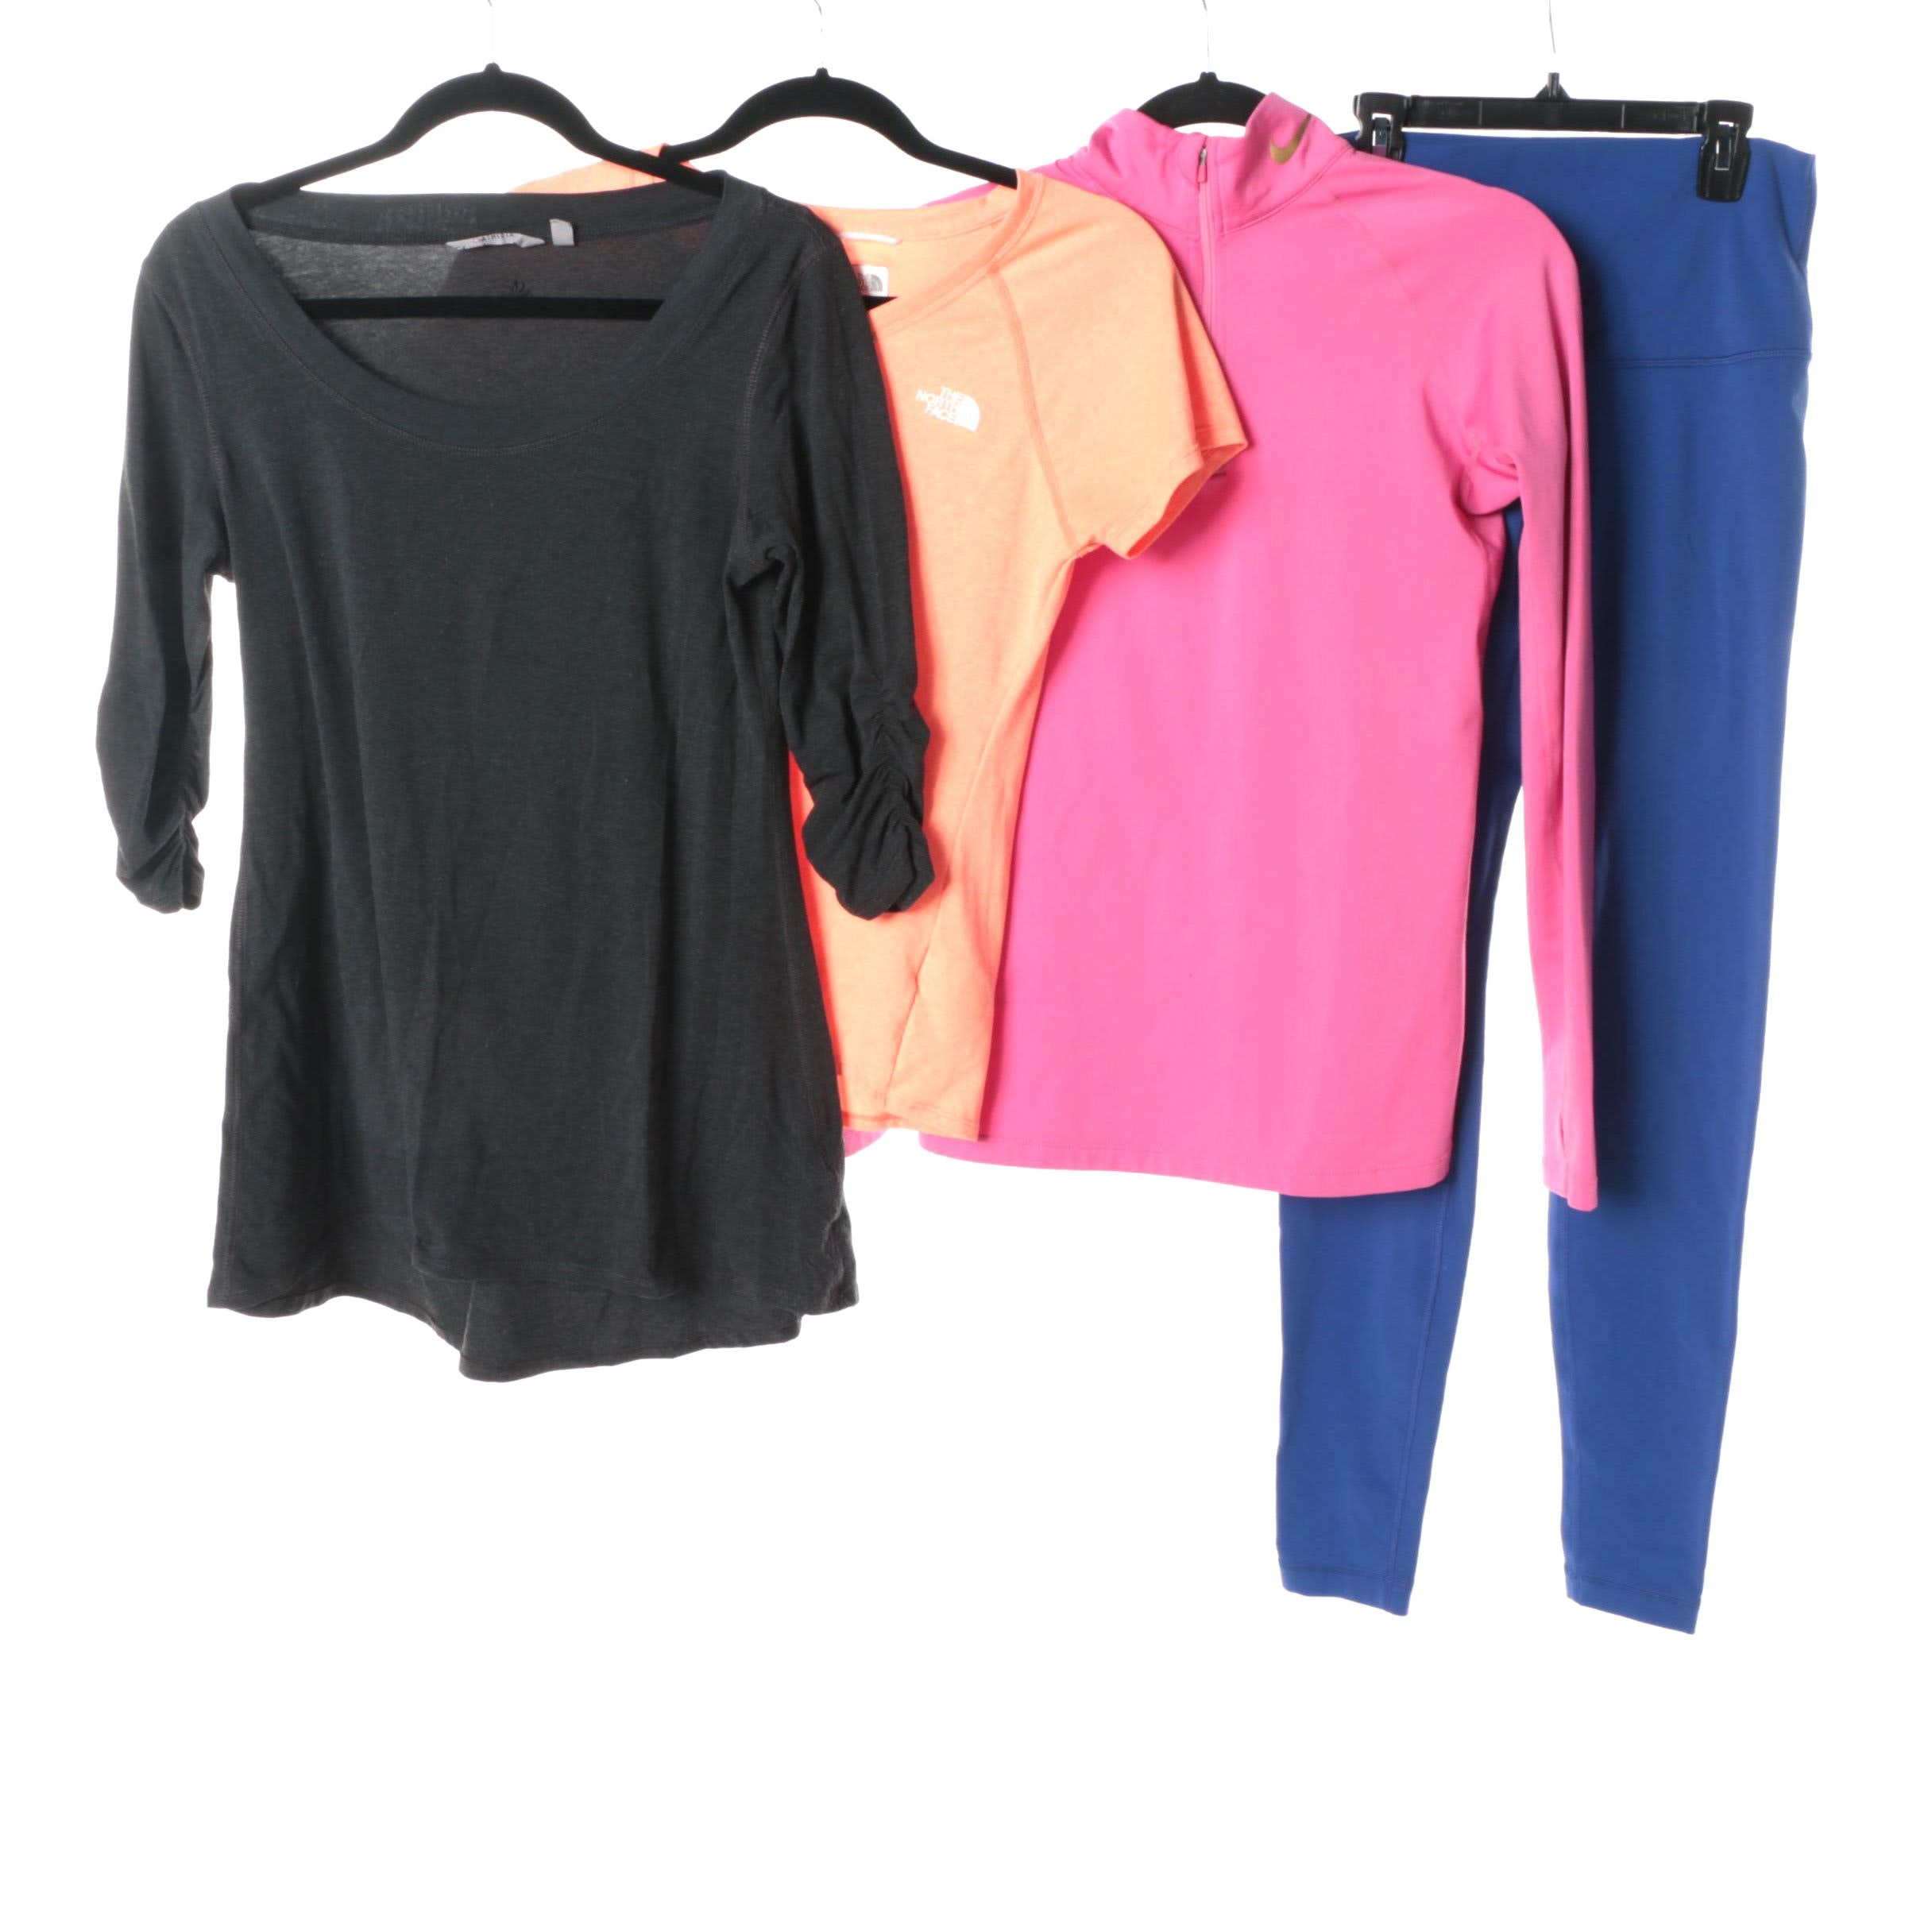 Women's Lululemon, The North Face, Nike and Athleta Athletic Wear